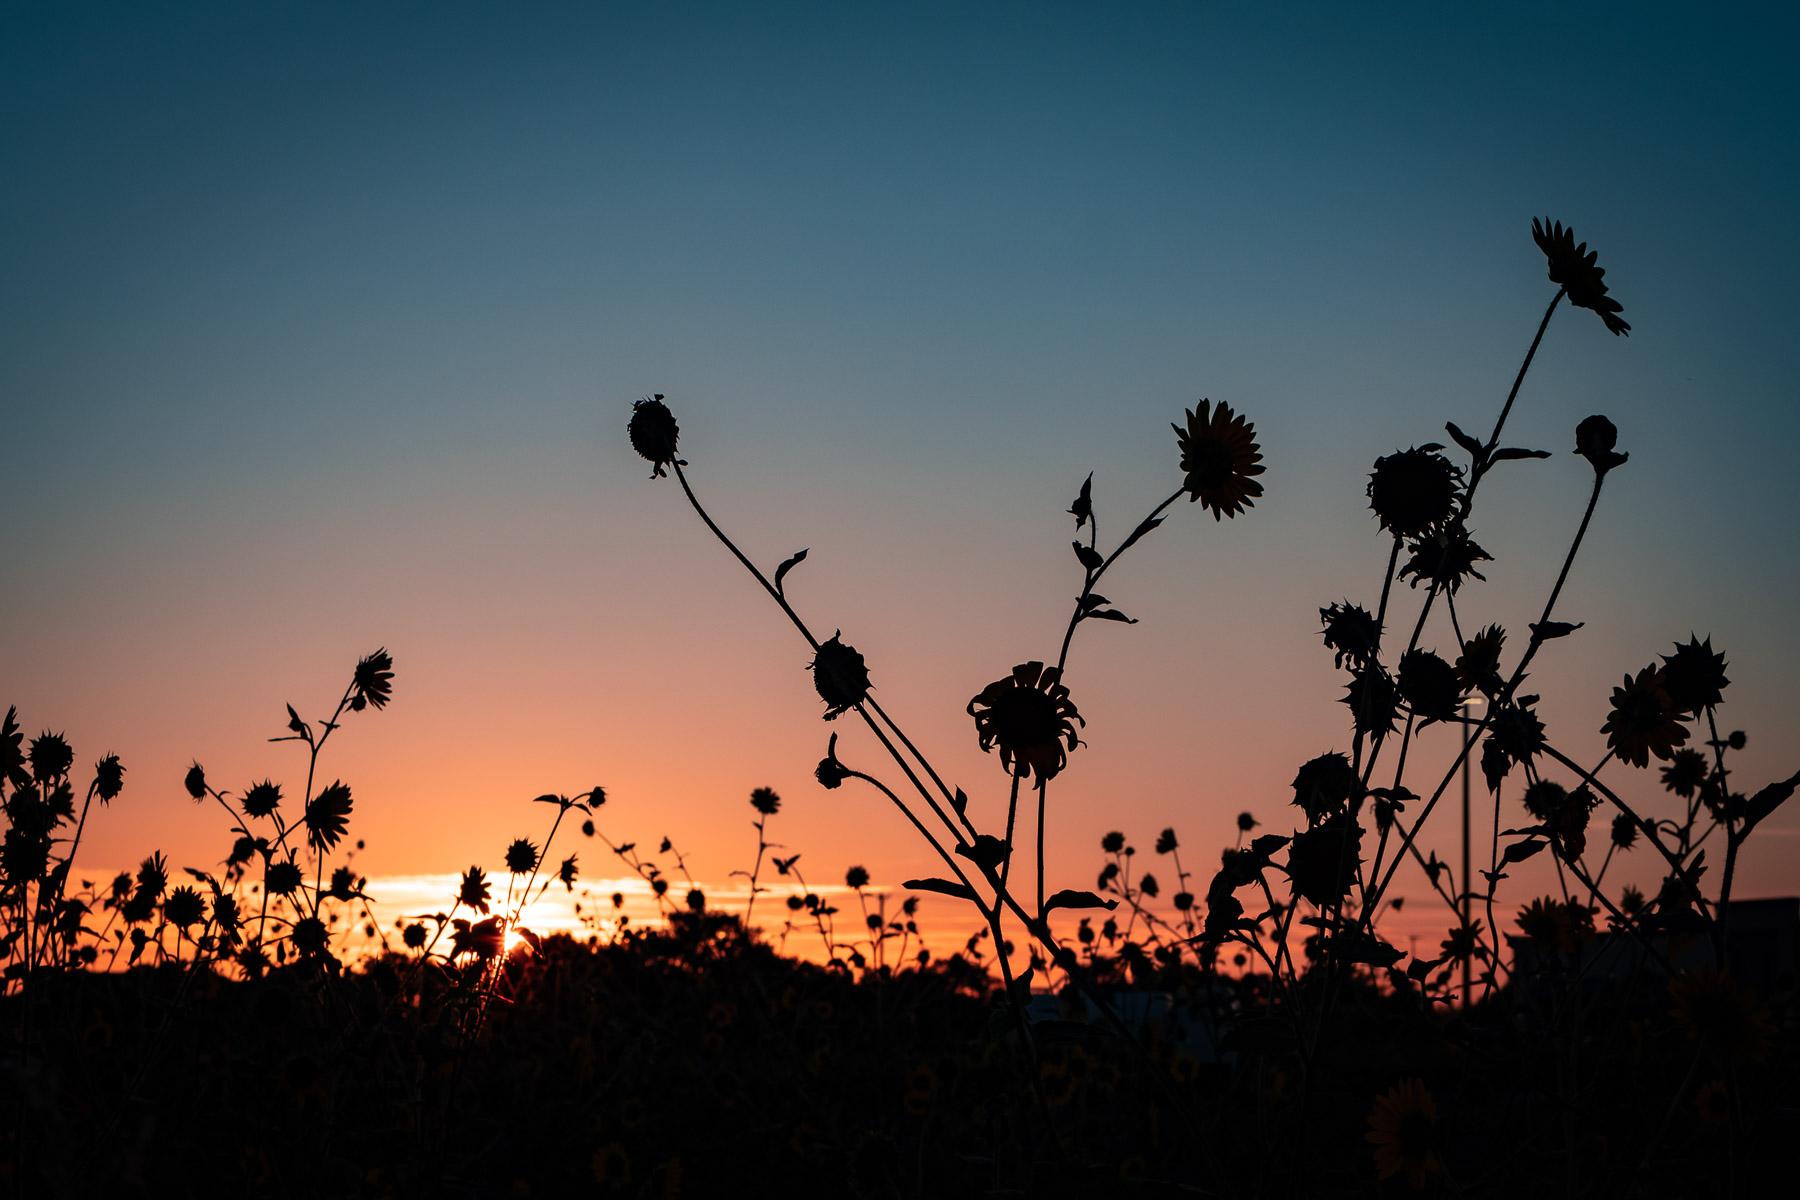 Sunflowers at sunset in McKinney, Texas.